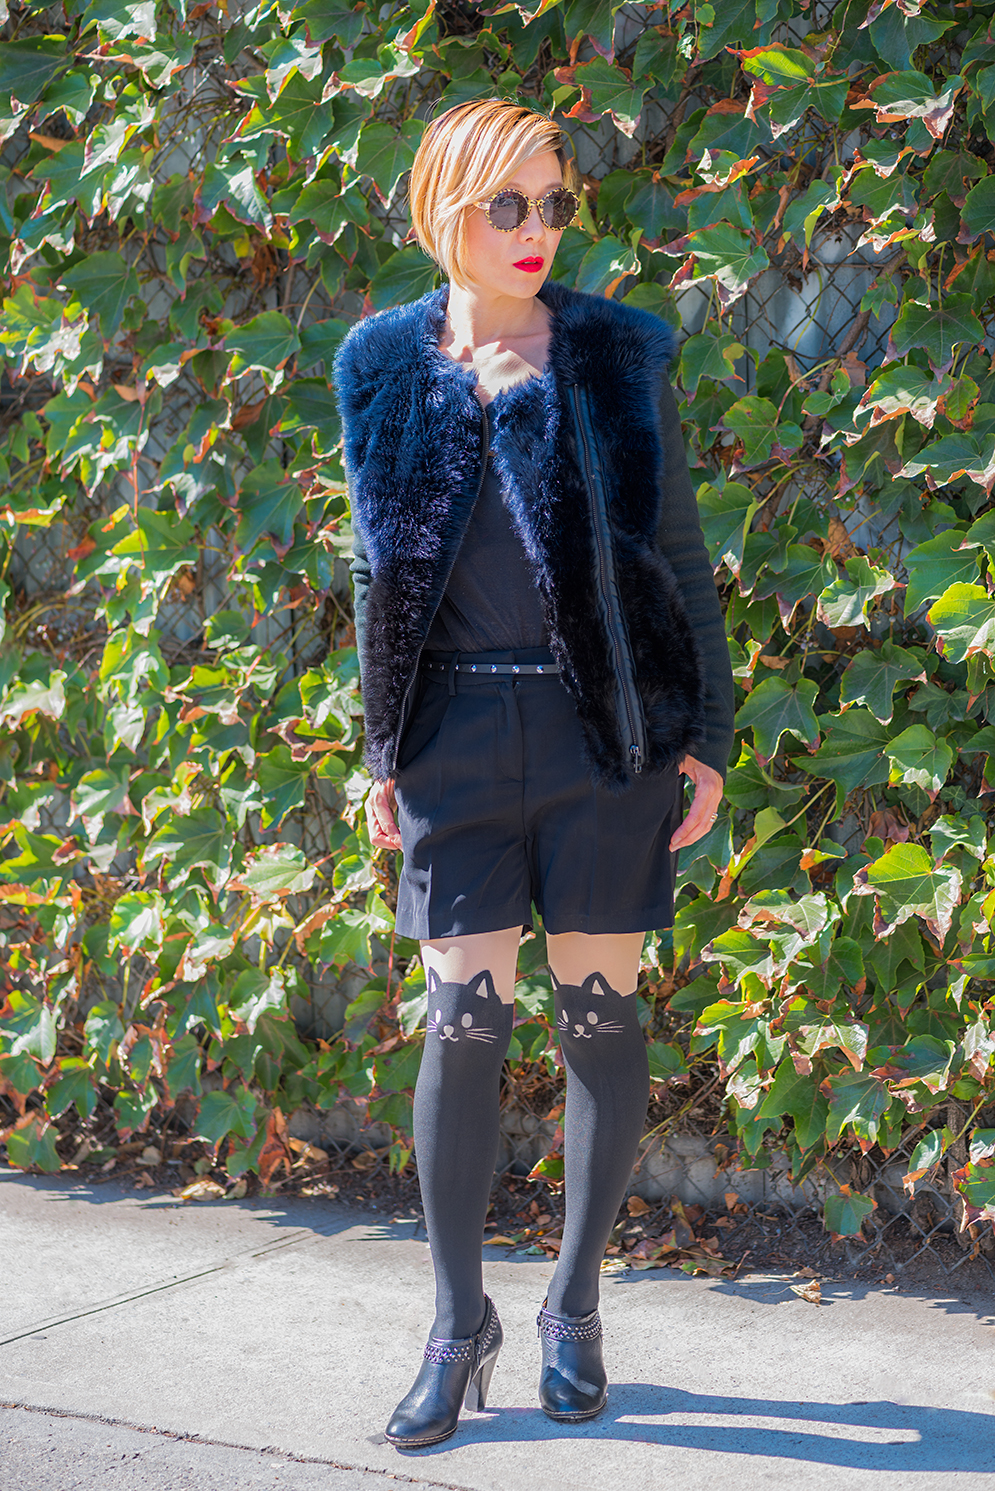 ROCK MAMA NYC LIFESTYLE BLOG - MEOW ROCK